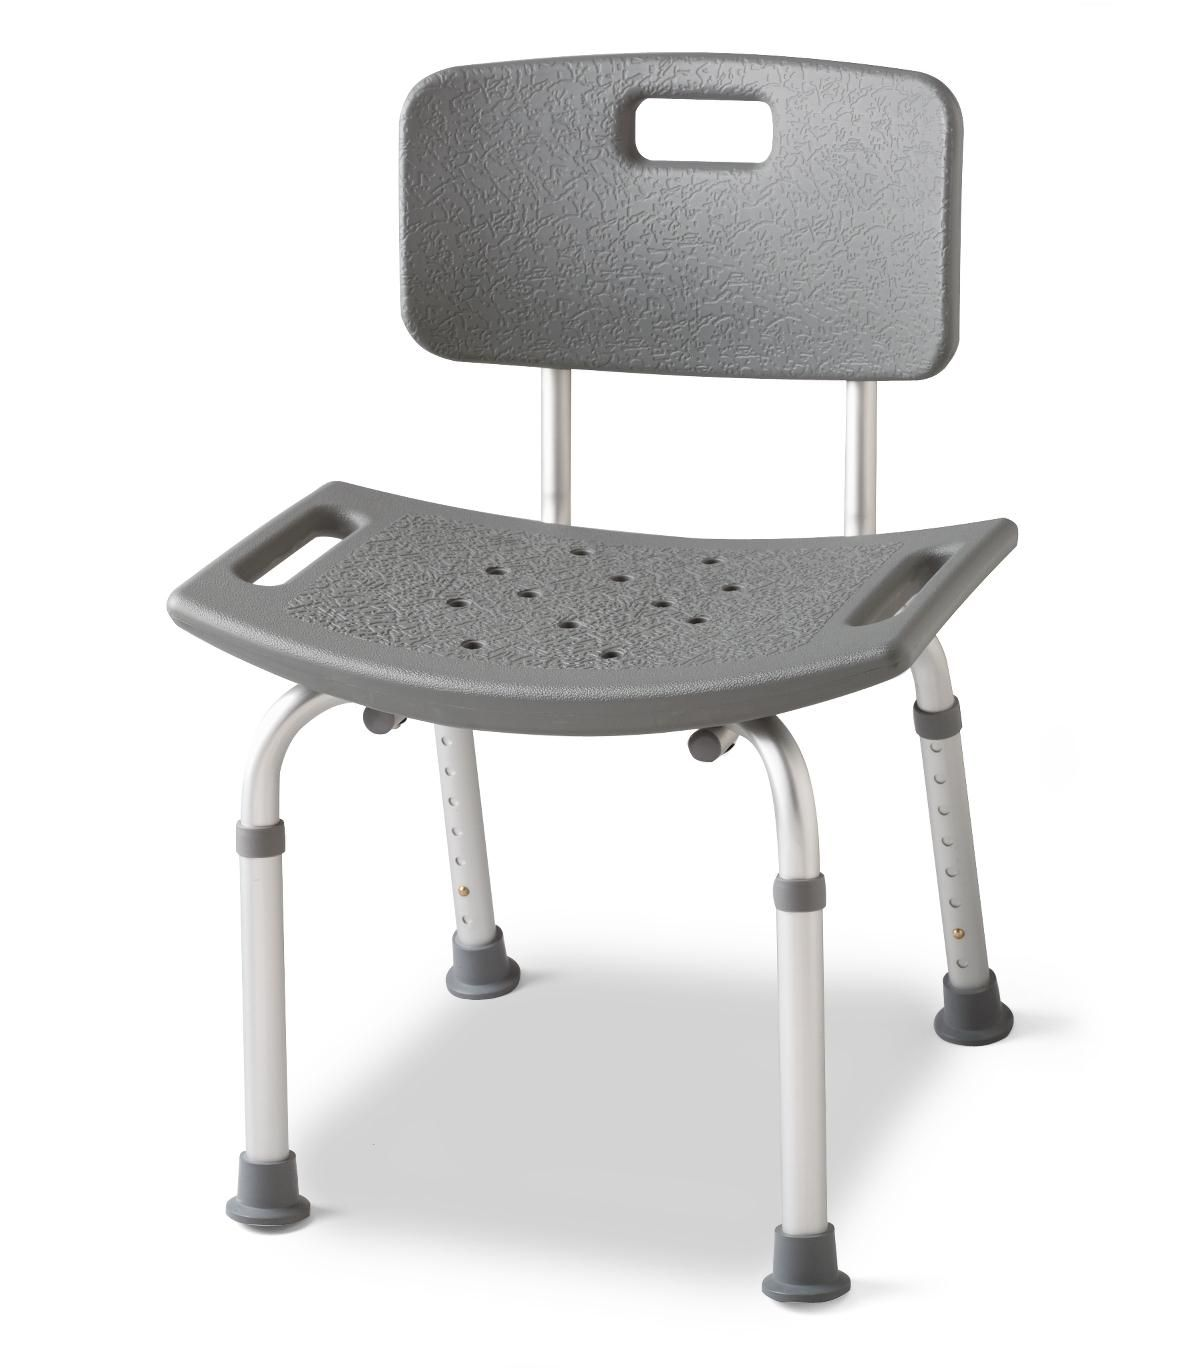 Bath Seat For Elderly Handicap Shower Chairs The Disabled Small